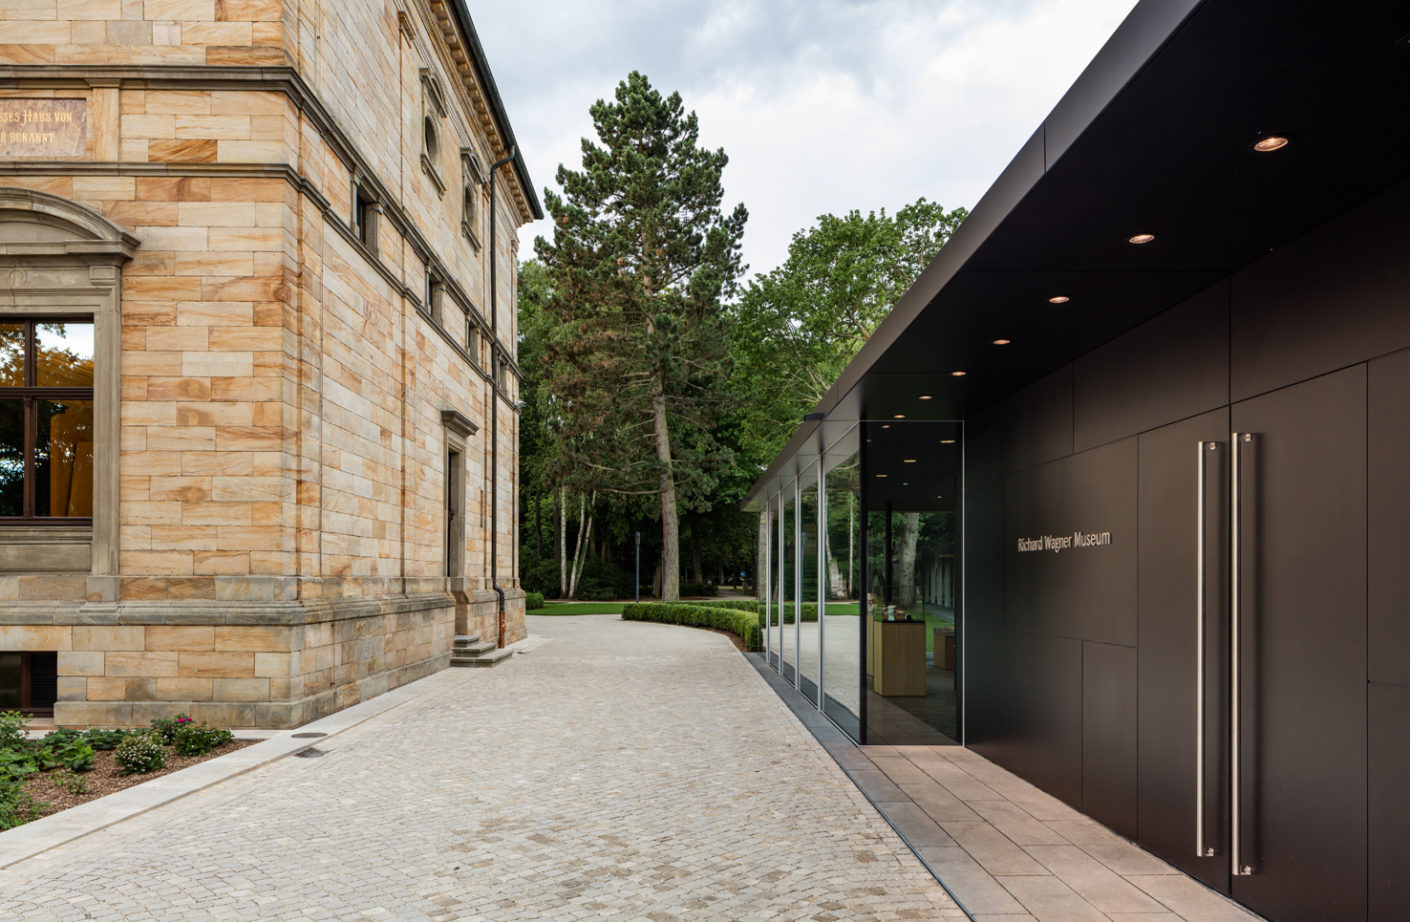 The single-storey extension made of glass and steel by Staab Architects extends along the length of the main building.